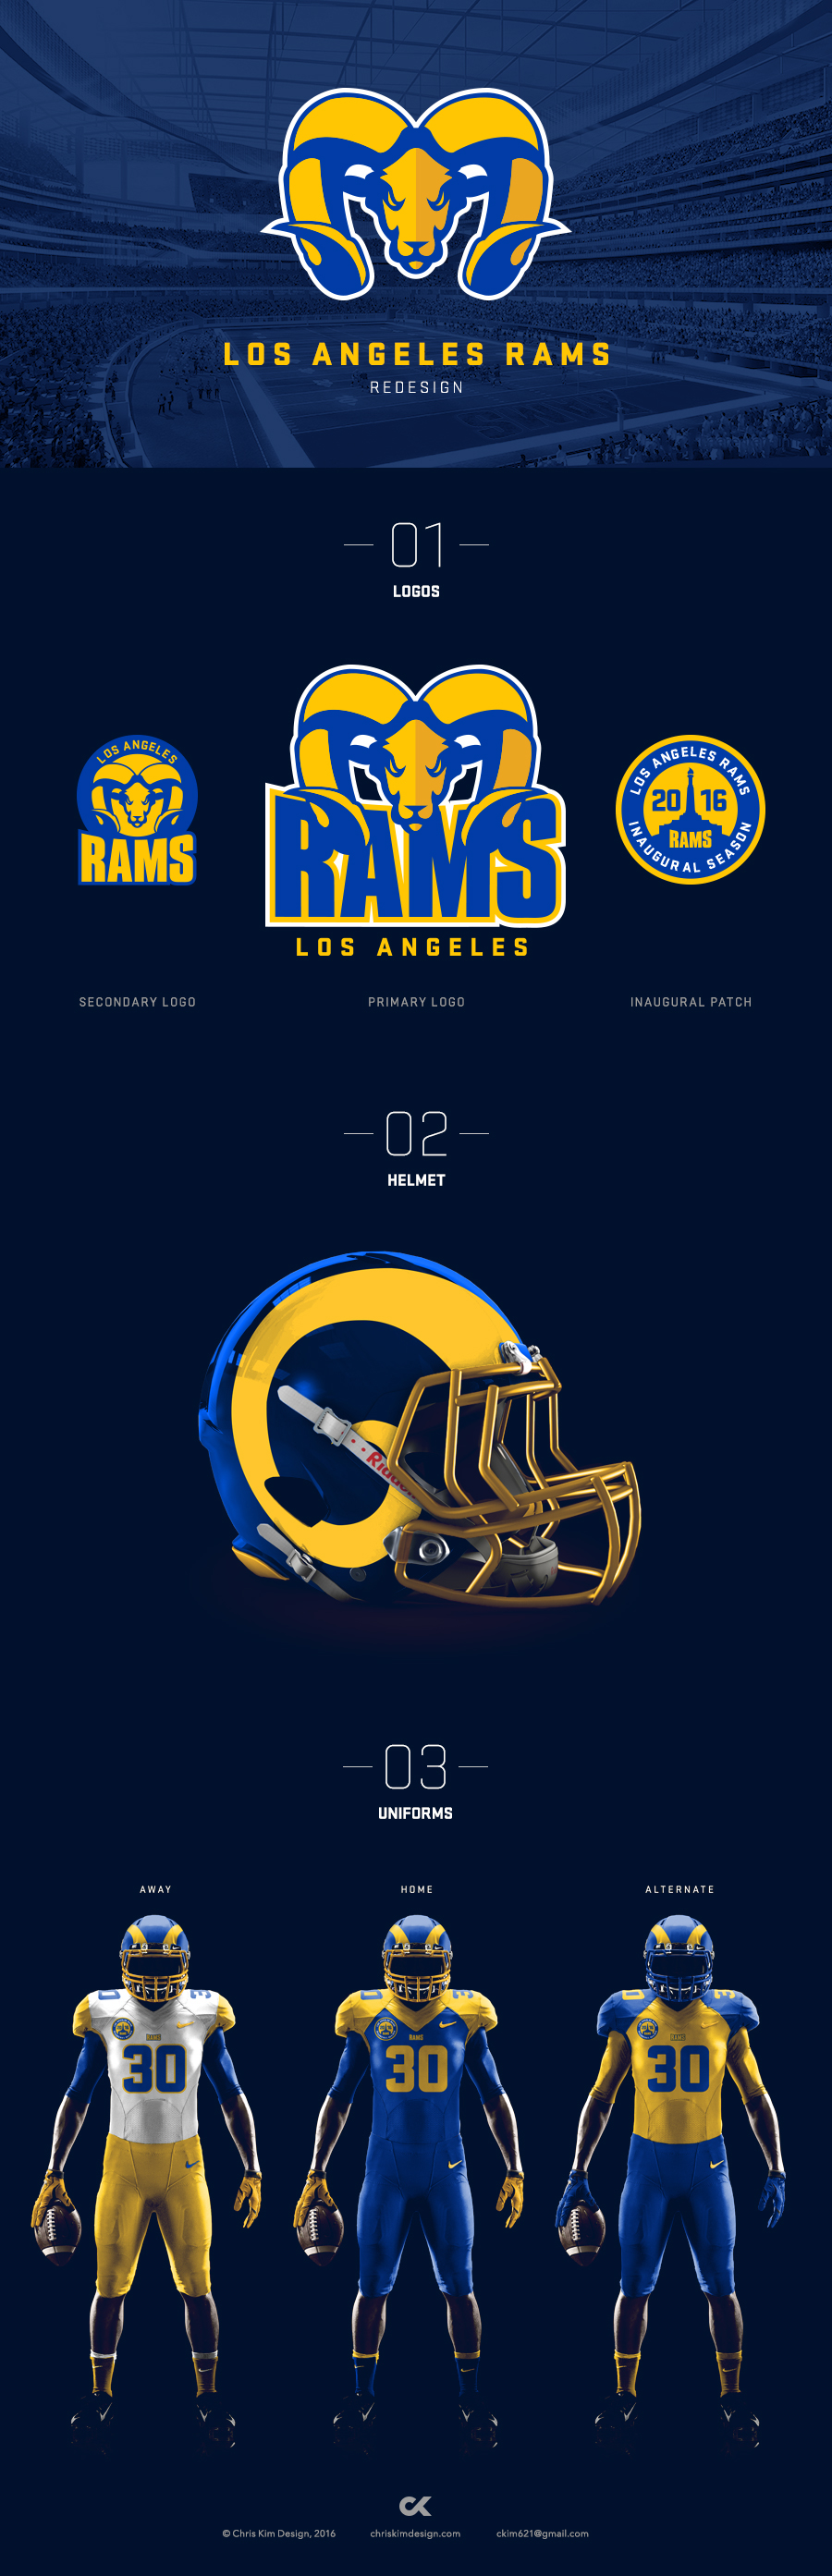 Los Angeles Rams Redesign On Behance Los Angeles Rams Los Angeles Sports Design